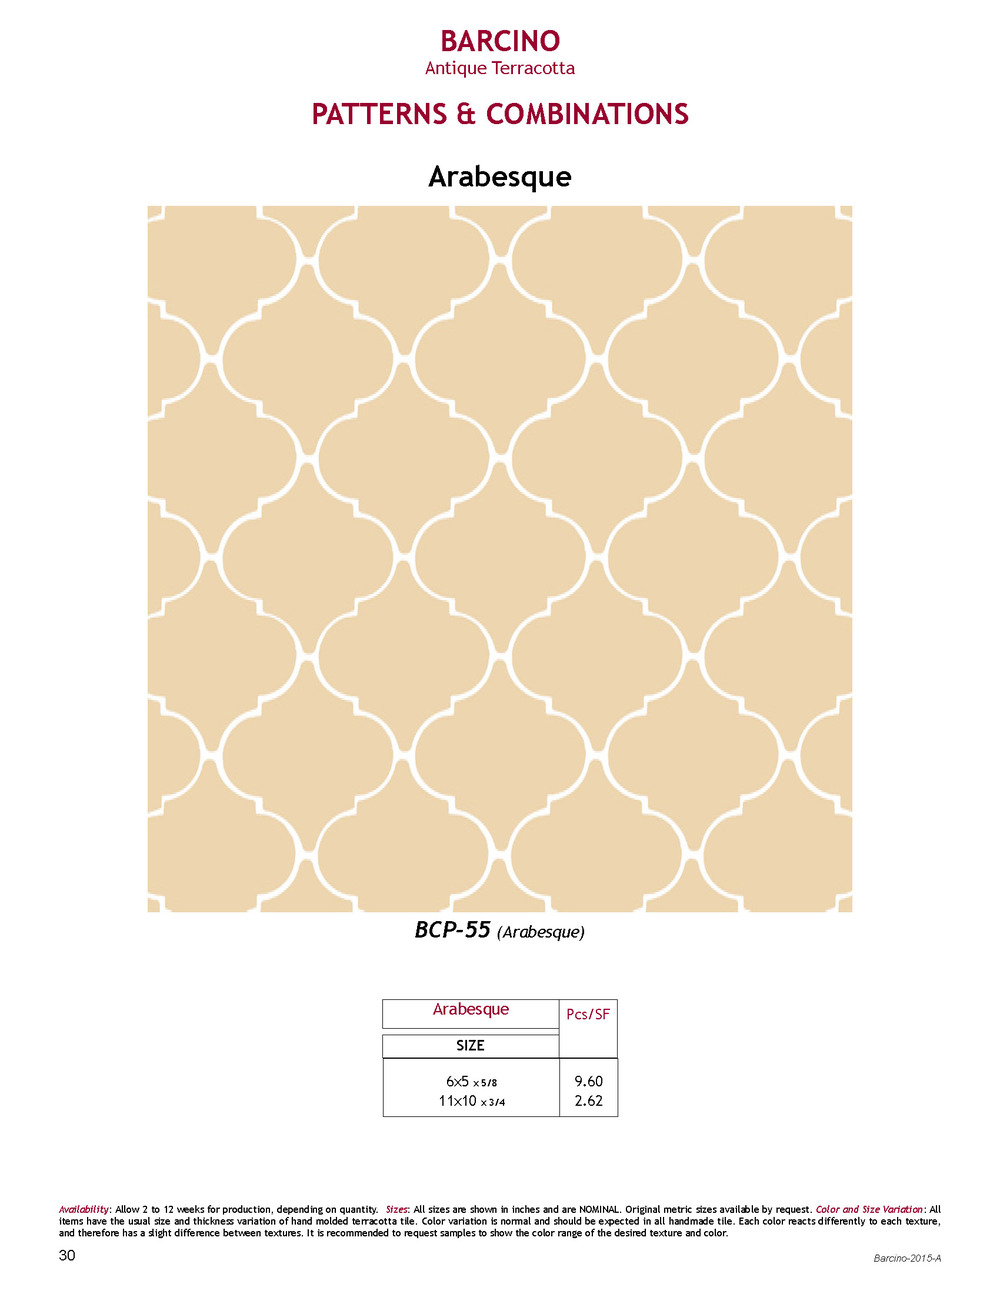 2-Barcino-Patterns&Combinations2015-A_Page_30.jpg